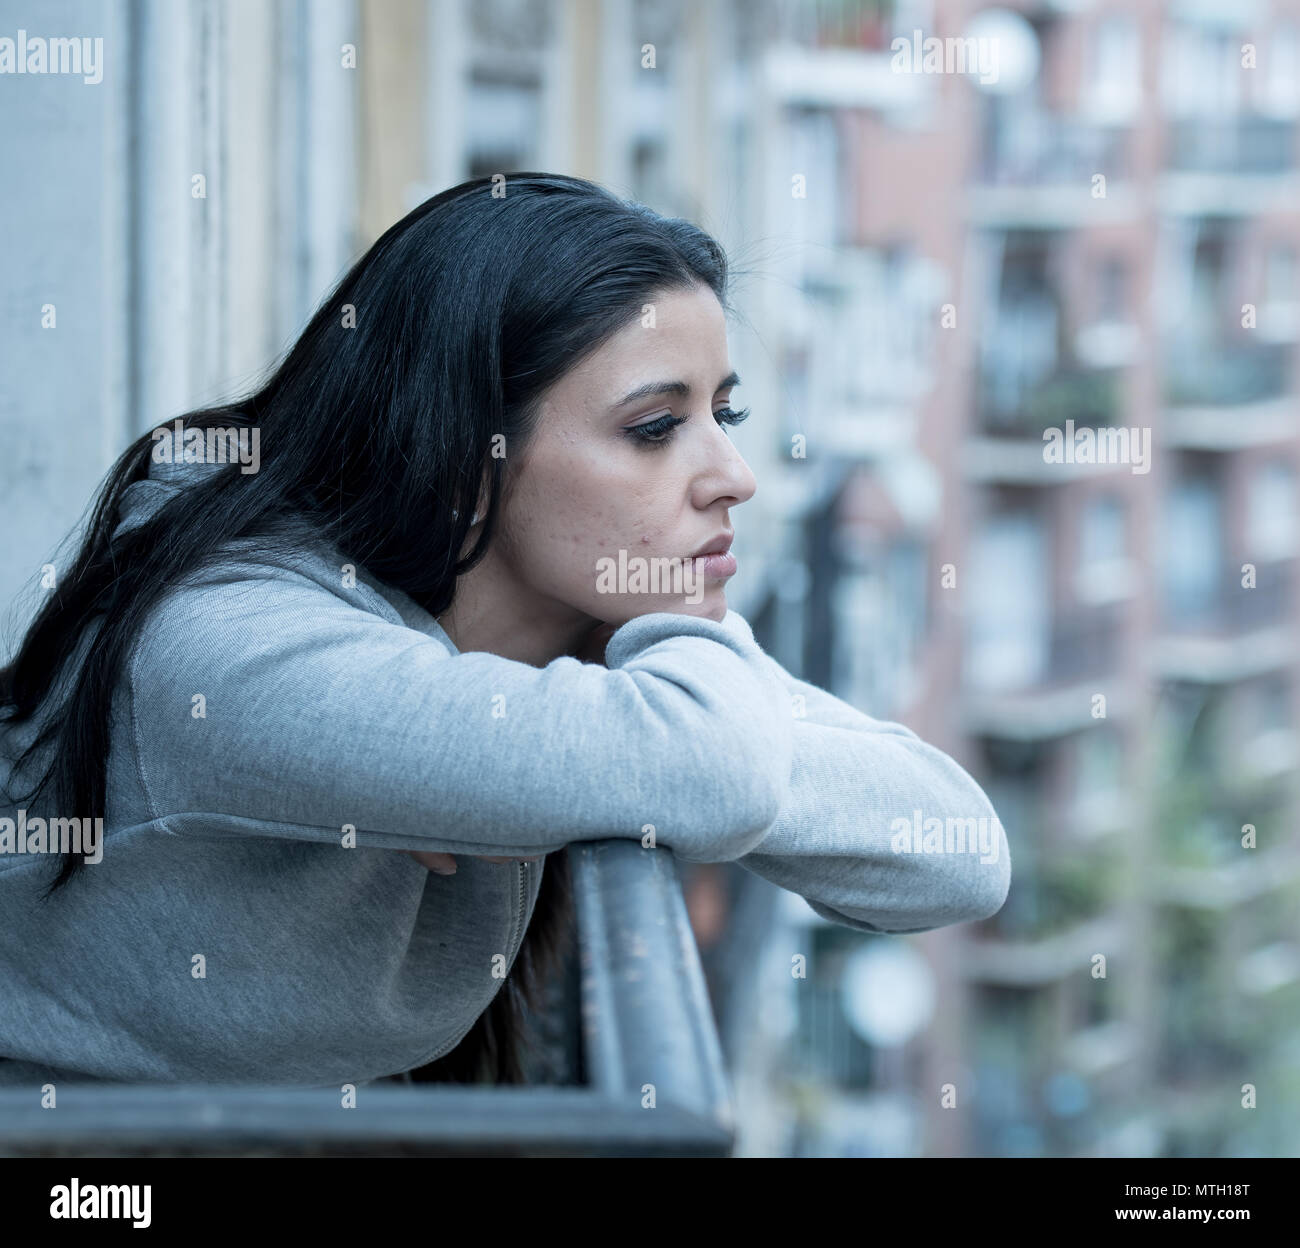 Beautiful latin depressed lonely woman staring out feeling sad, pain and worried on a balcony at home. Crisis, depression and mental health concept - Stock Image